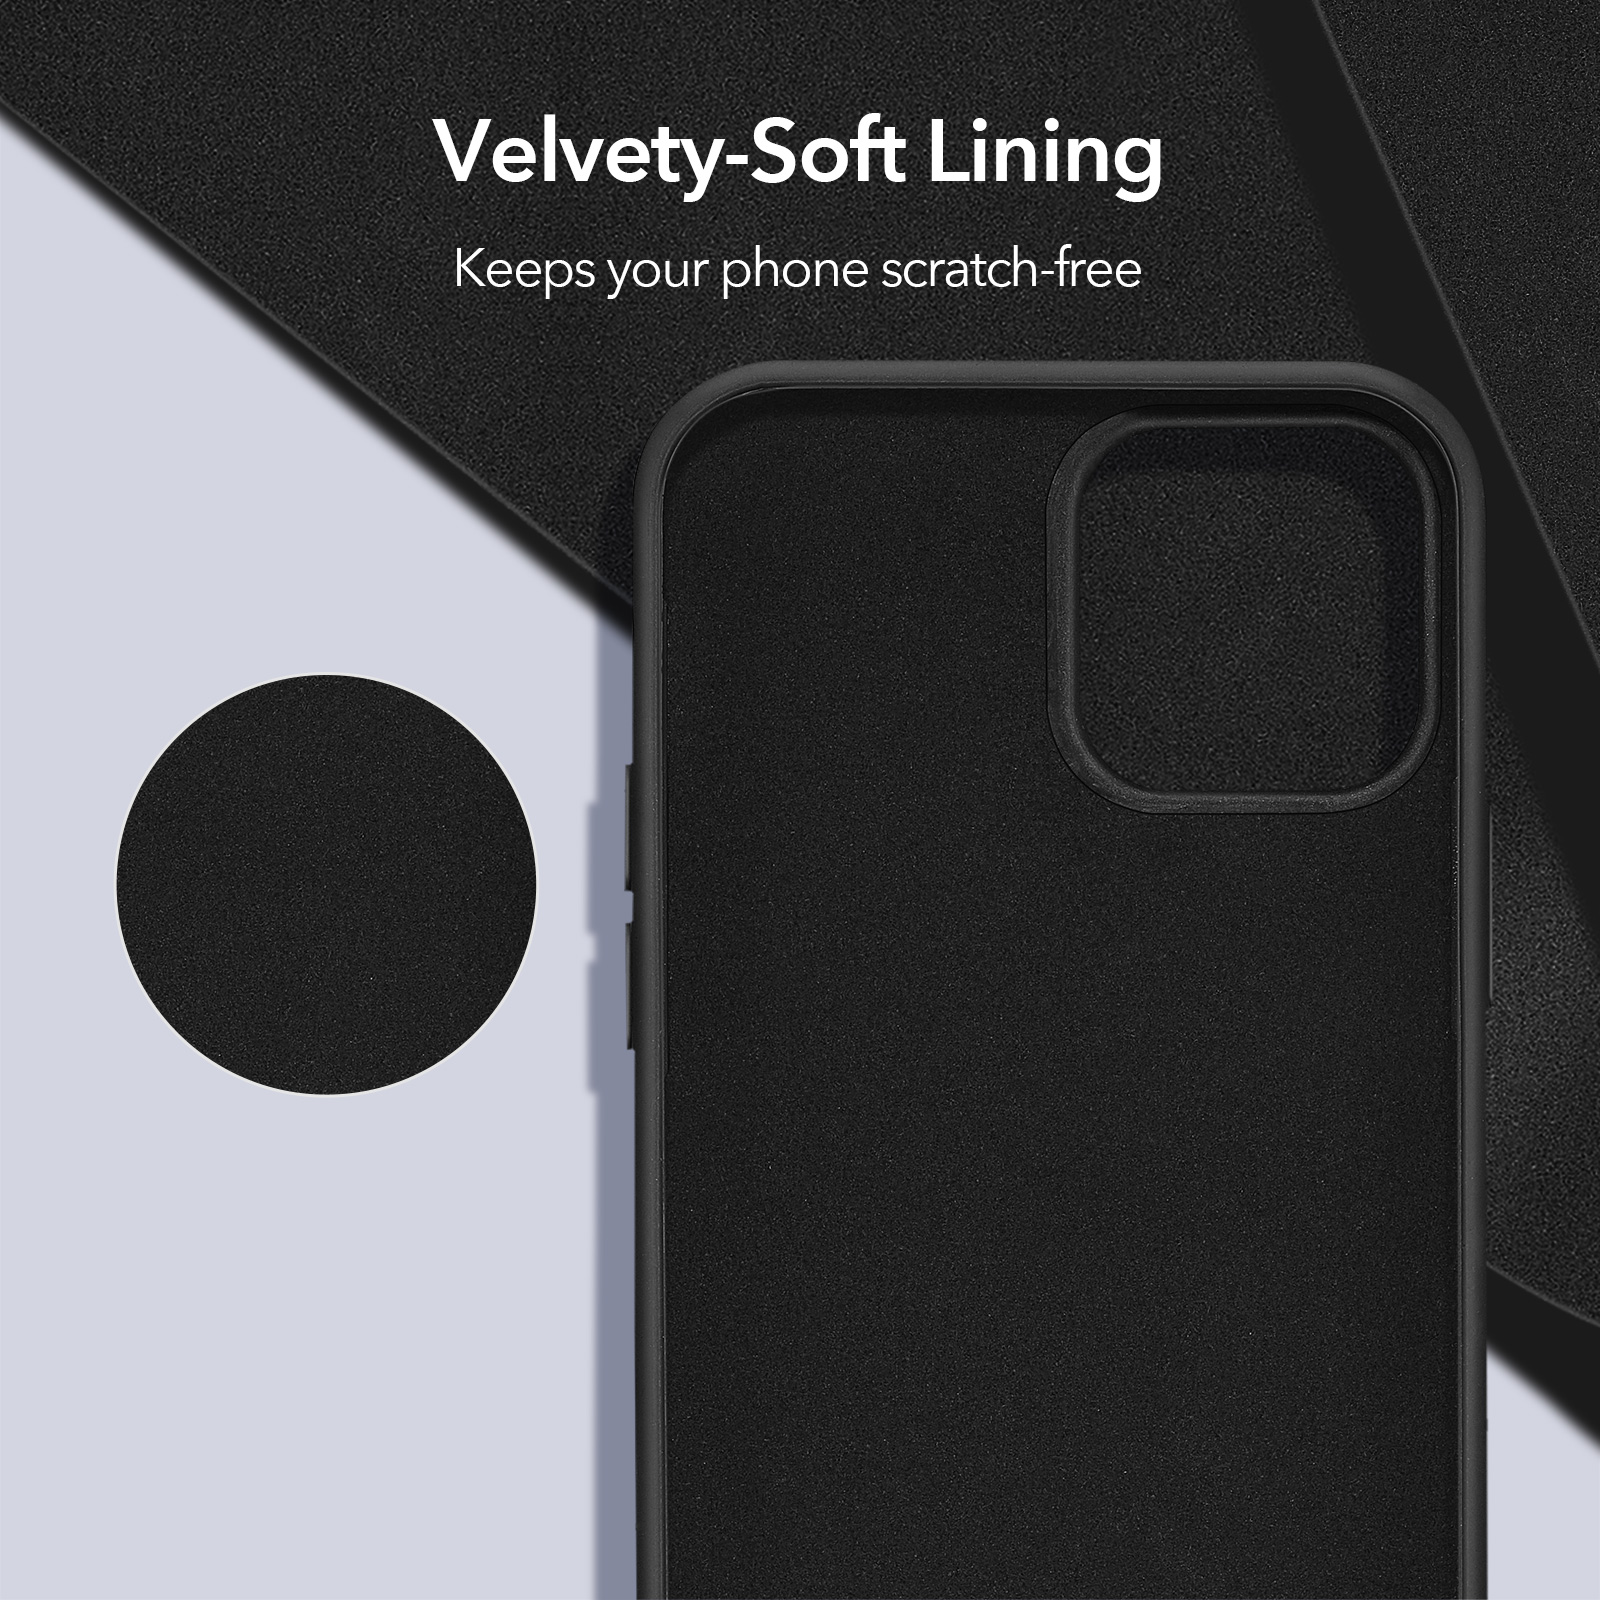 Velvety Soft Lining Silicone case for iphone 12 Pro